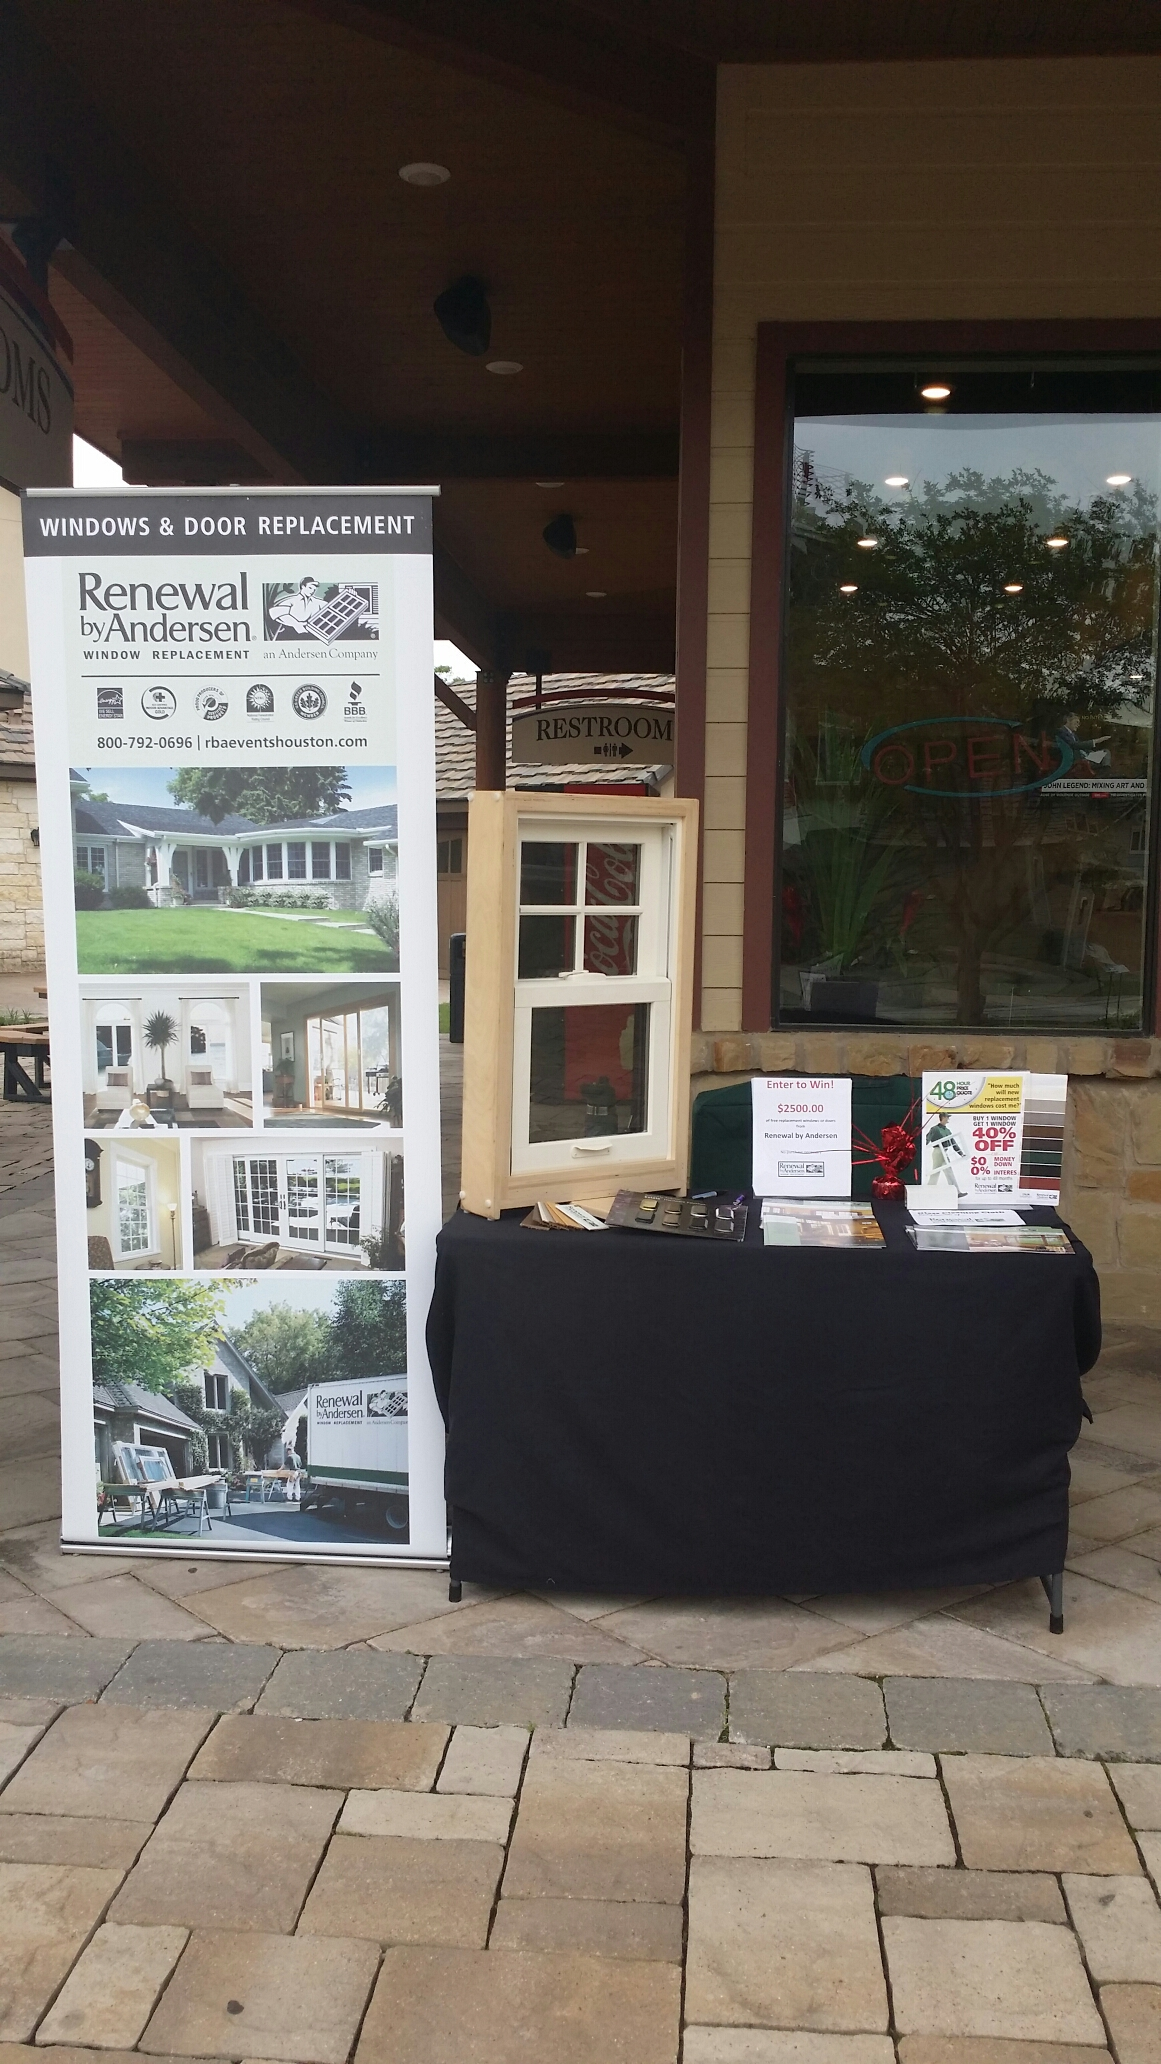 Spring, TX - Great day at Main Street America come drop by at our Tenewal by Andersen booth